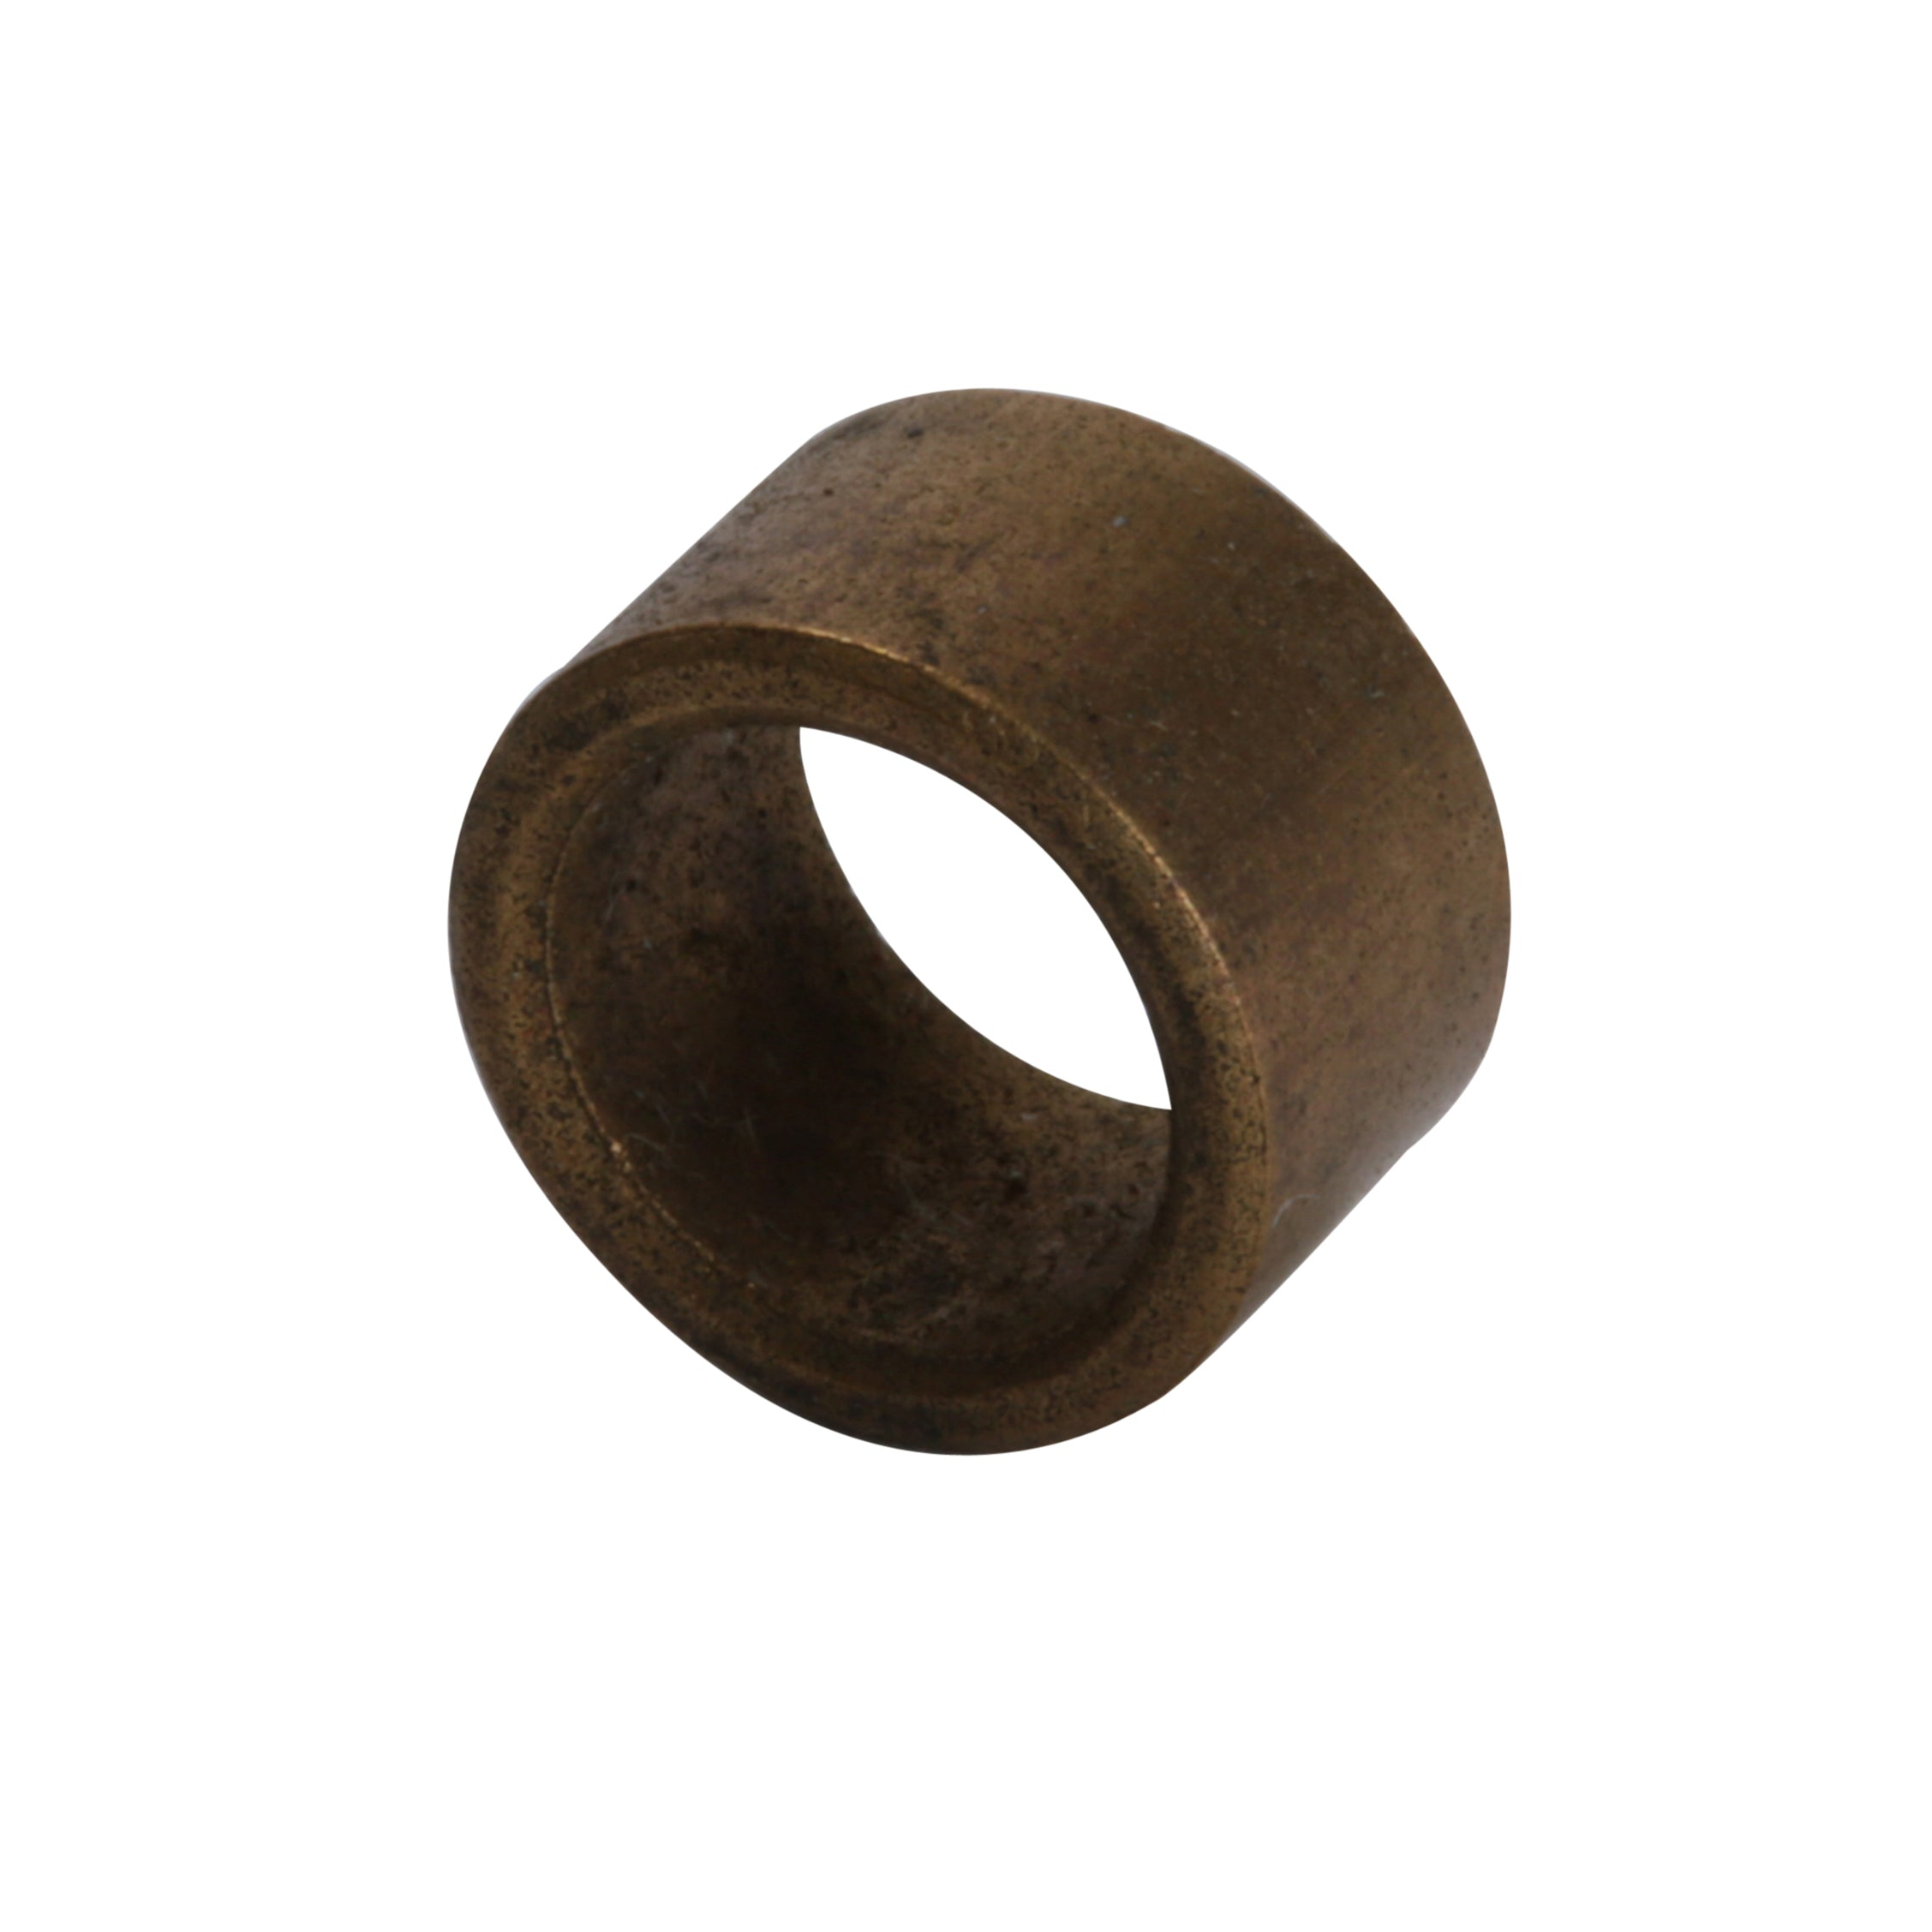 Distributor Point Plate Bushing • 1942-48 V-8 & 6 Cylinder Ford